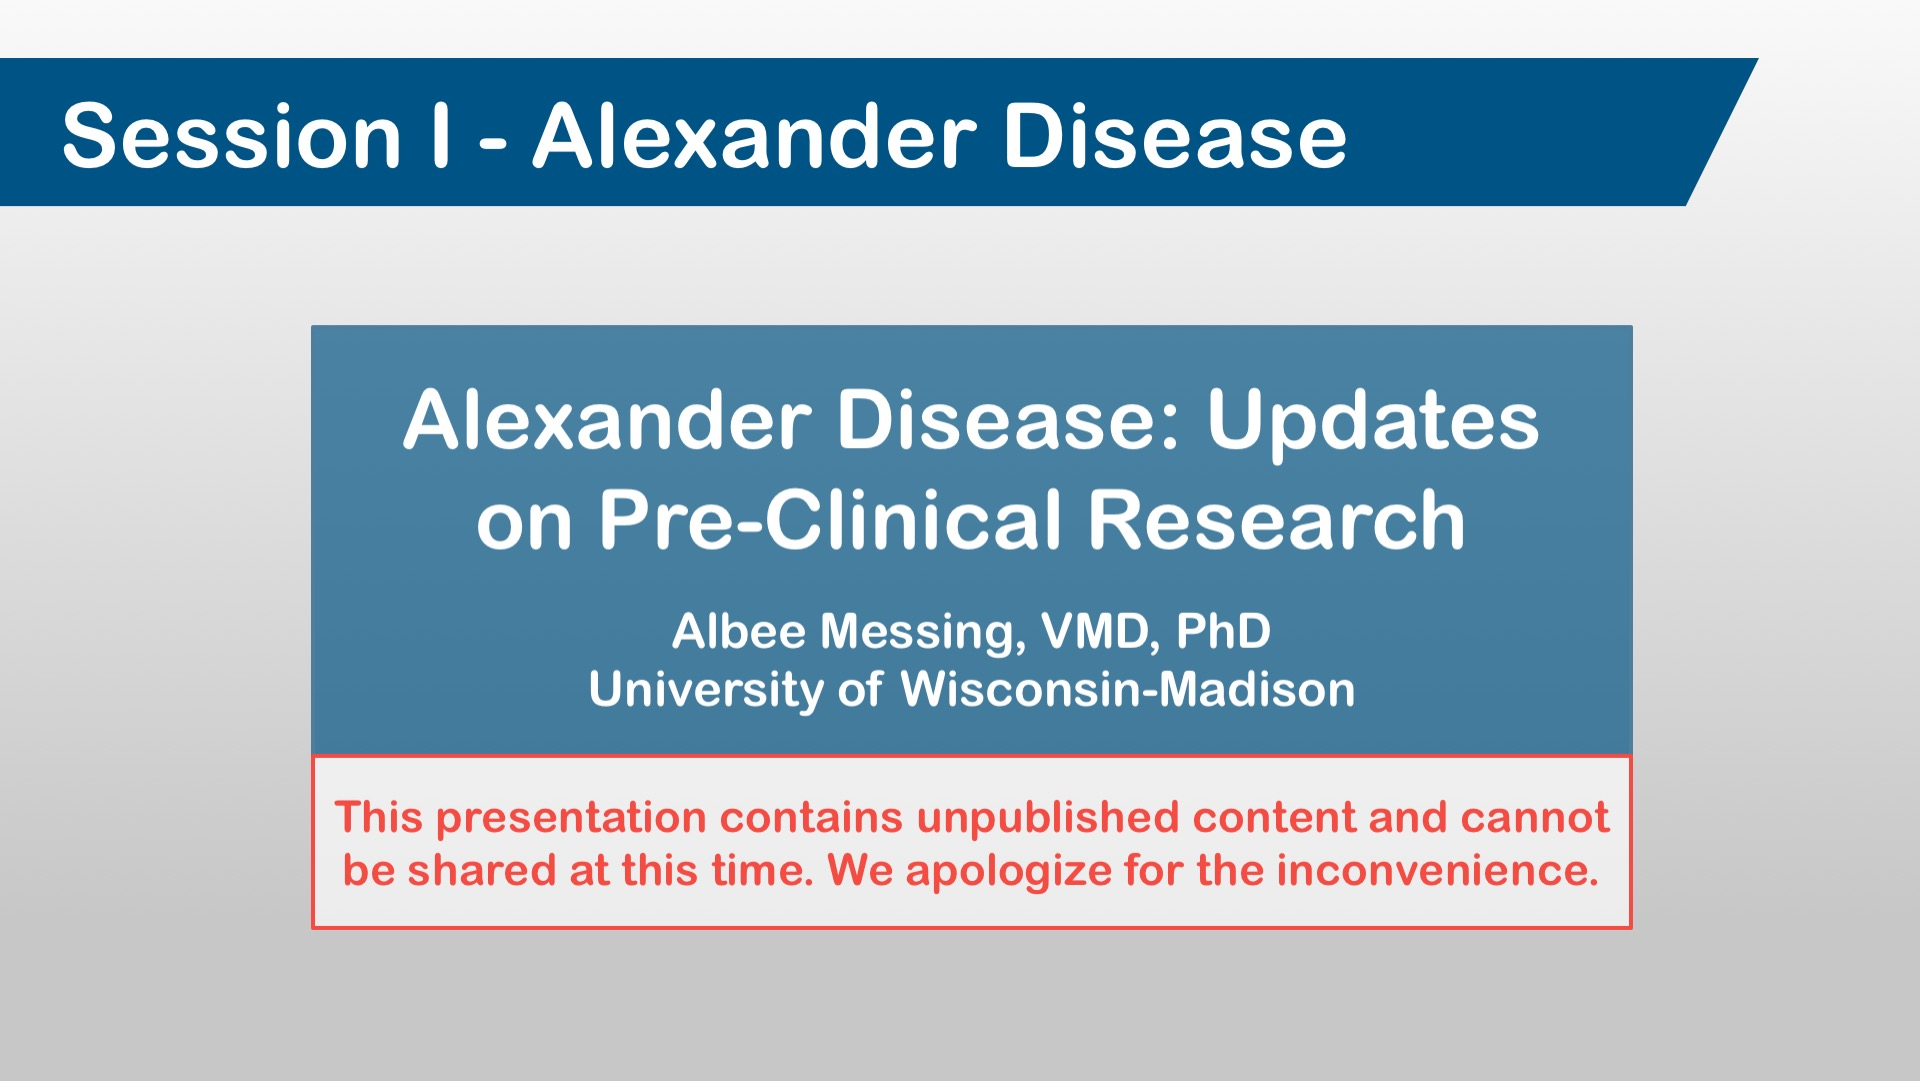 Alexander Disease: Updates on Pre-Clinical Research